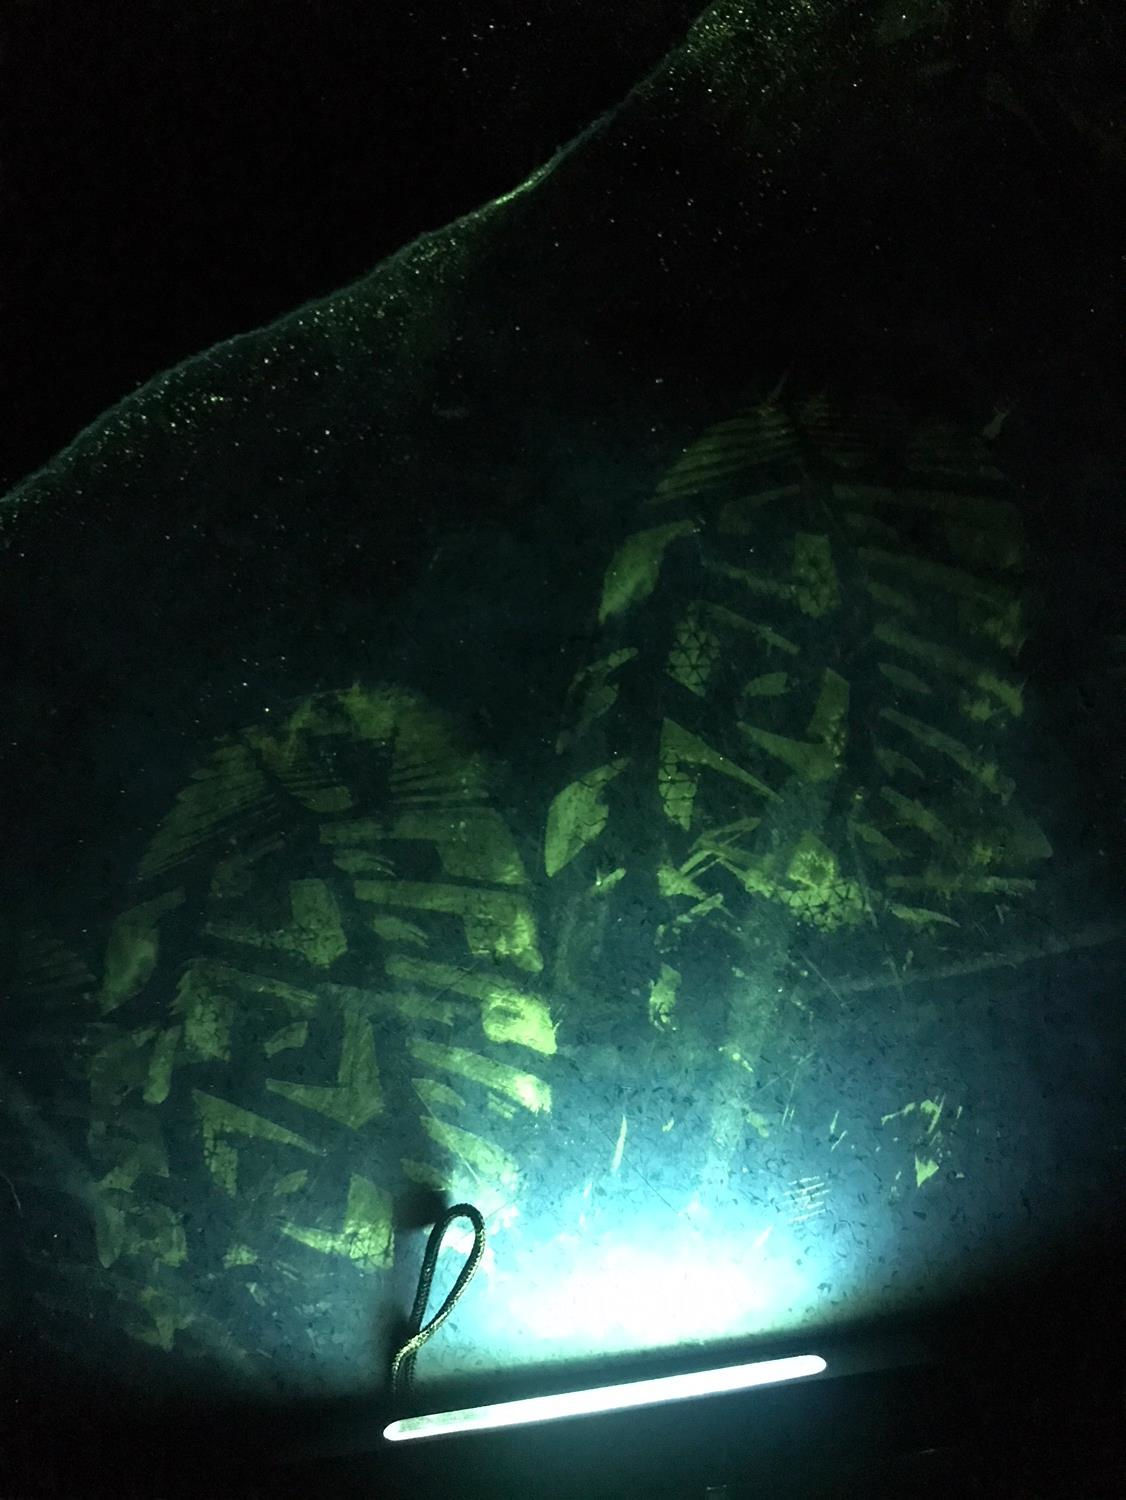 Bloody footprints imaged using Sciluminate powder. Image provided by Latent Forensics.